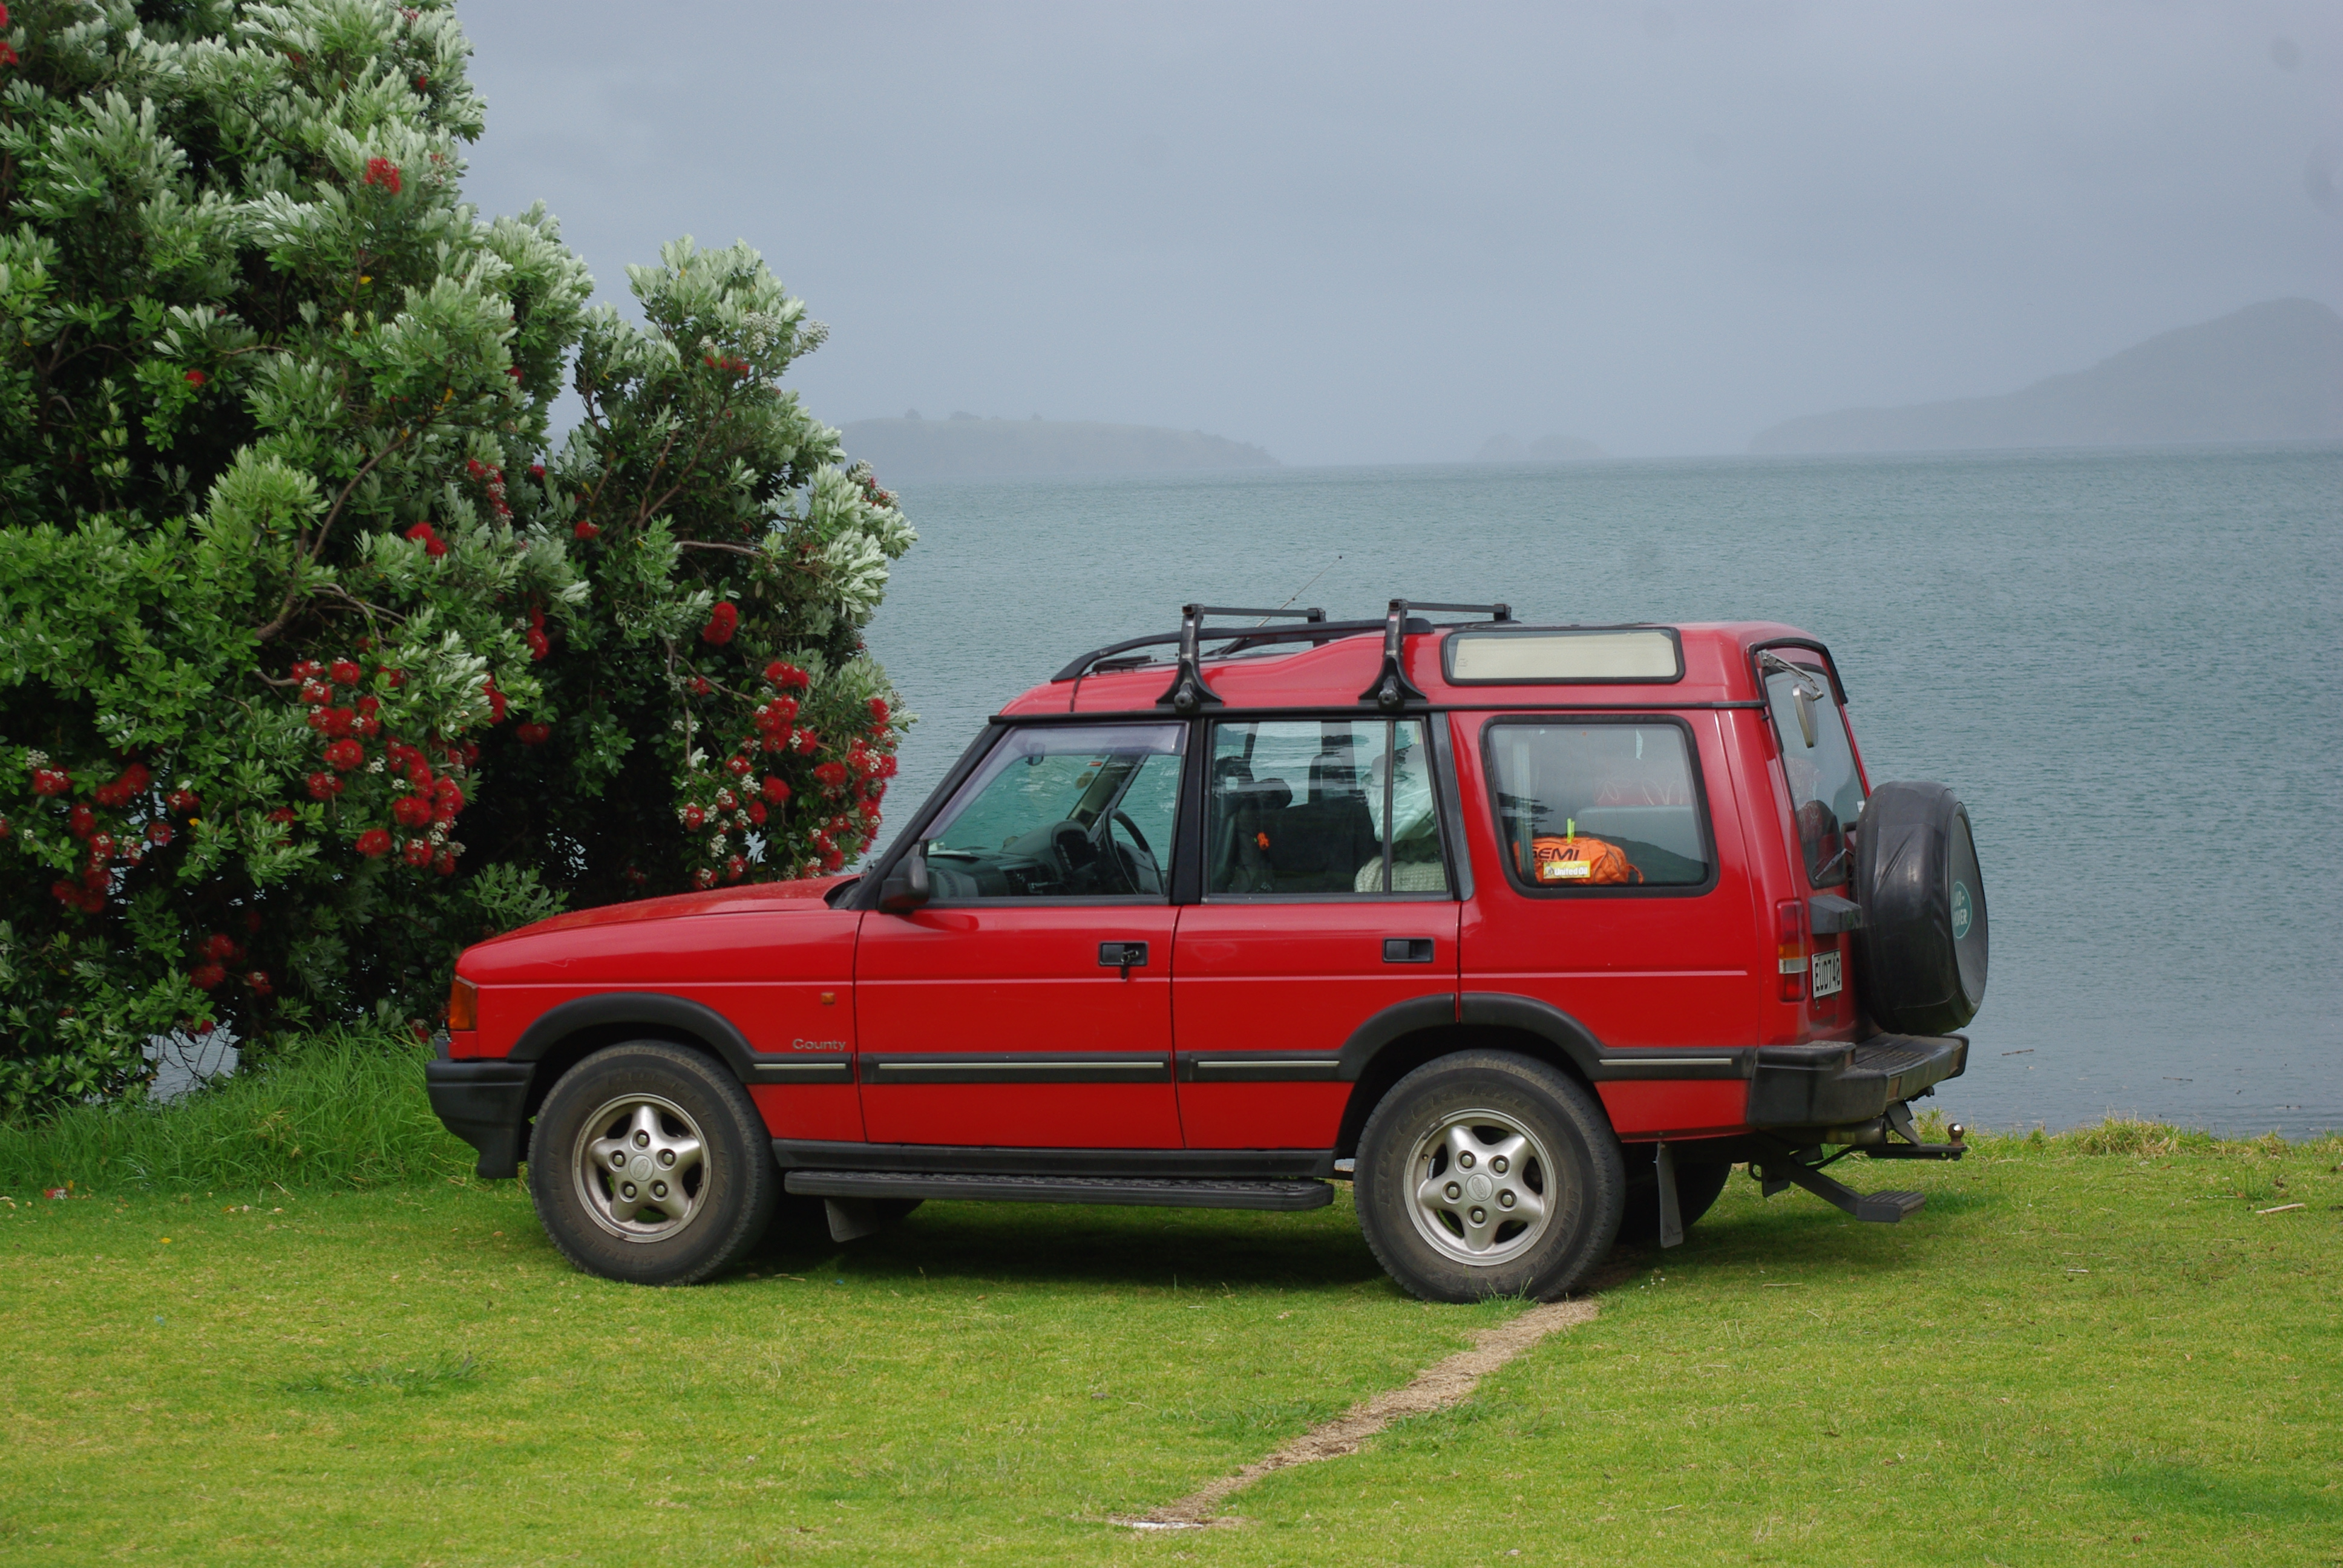 4x4 am nag land rover discovery 1998 151350 kms frogs in nz. Black Bedroom Furniture Sets. Home Design Ideas